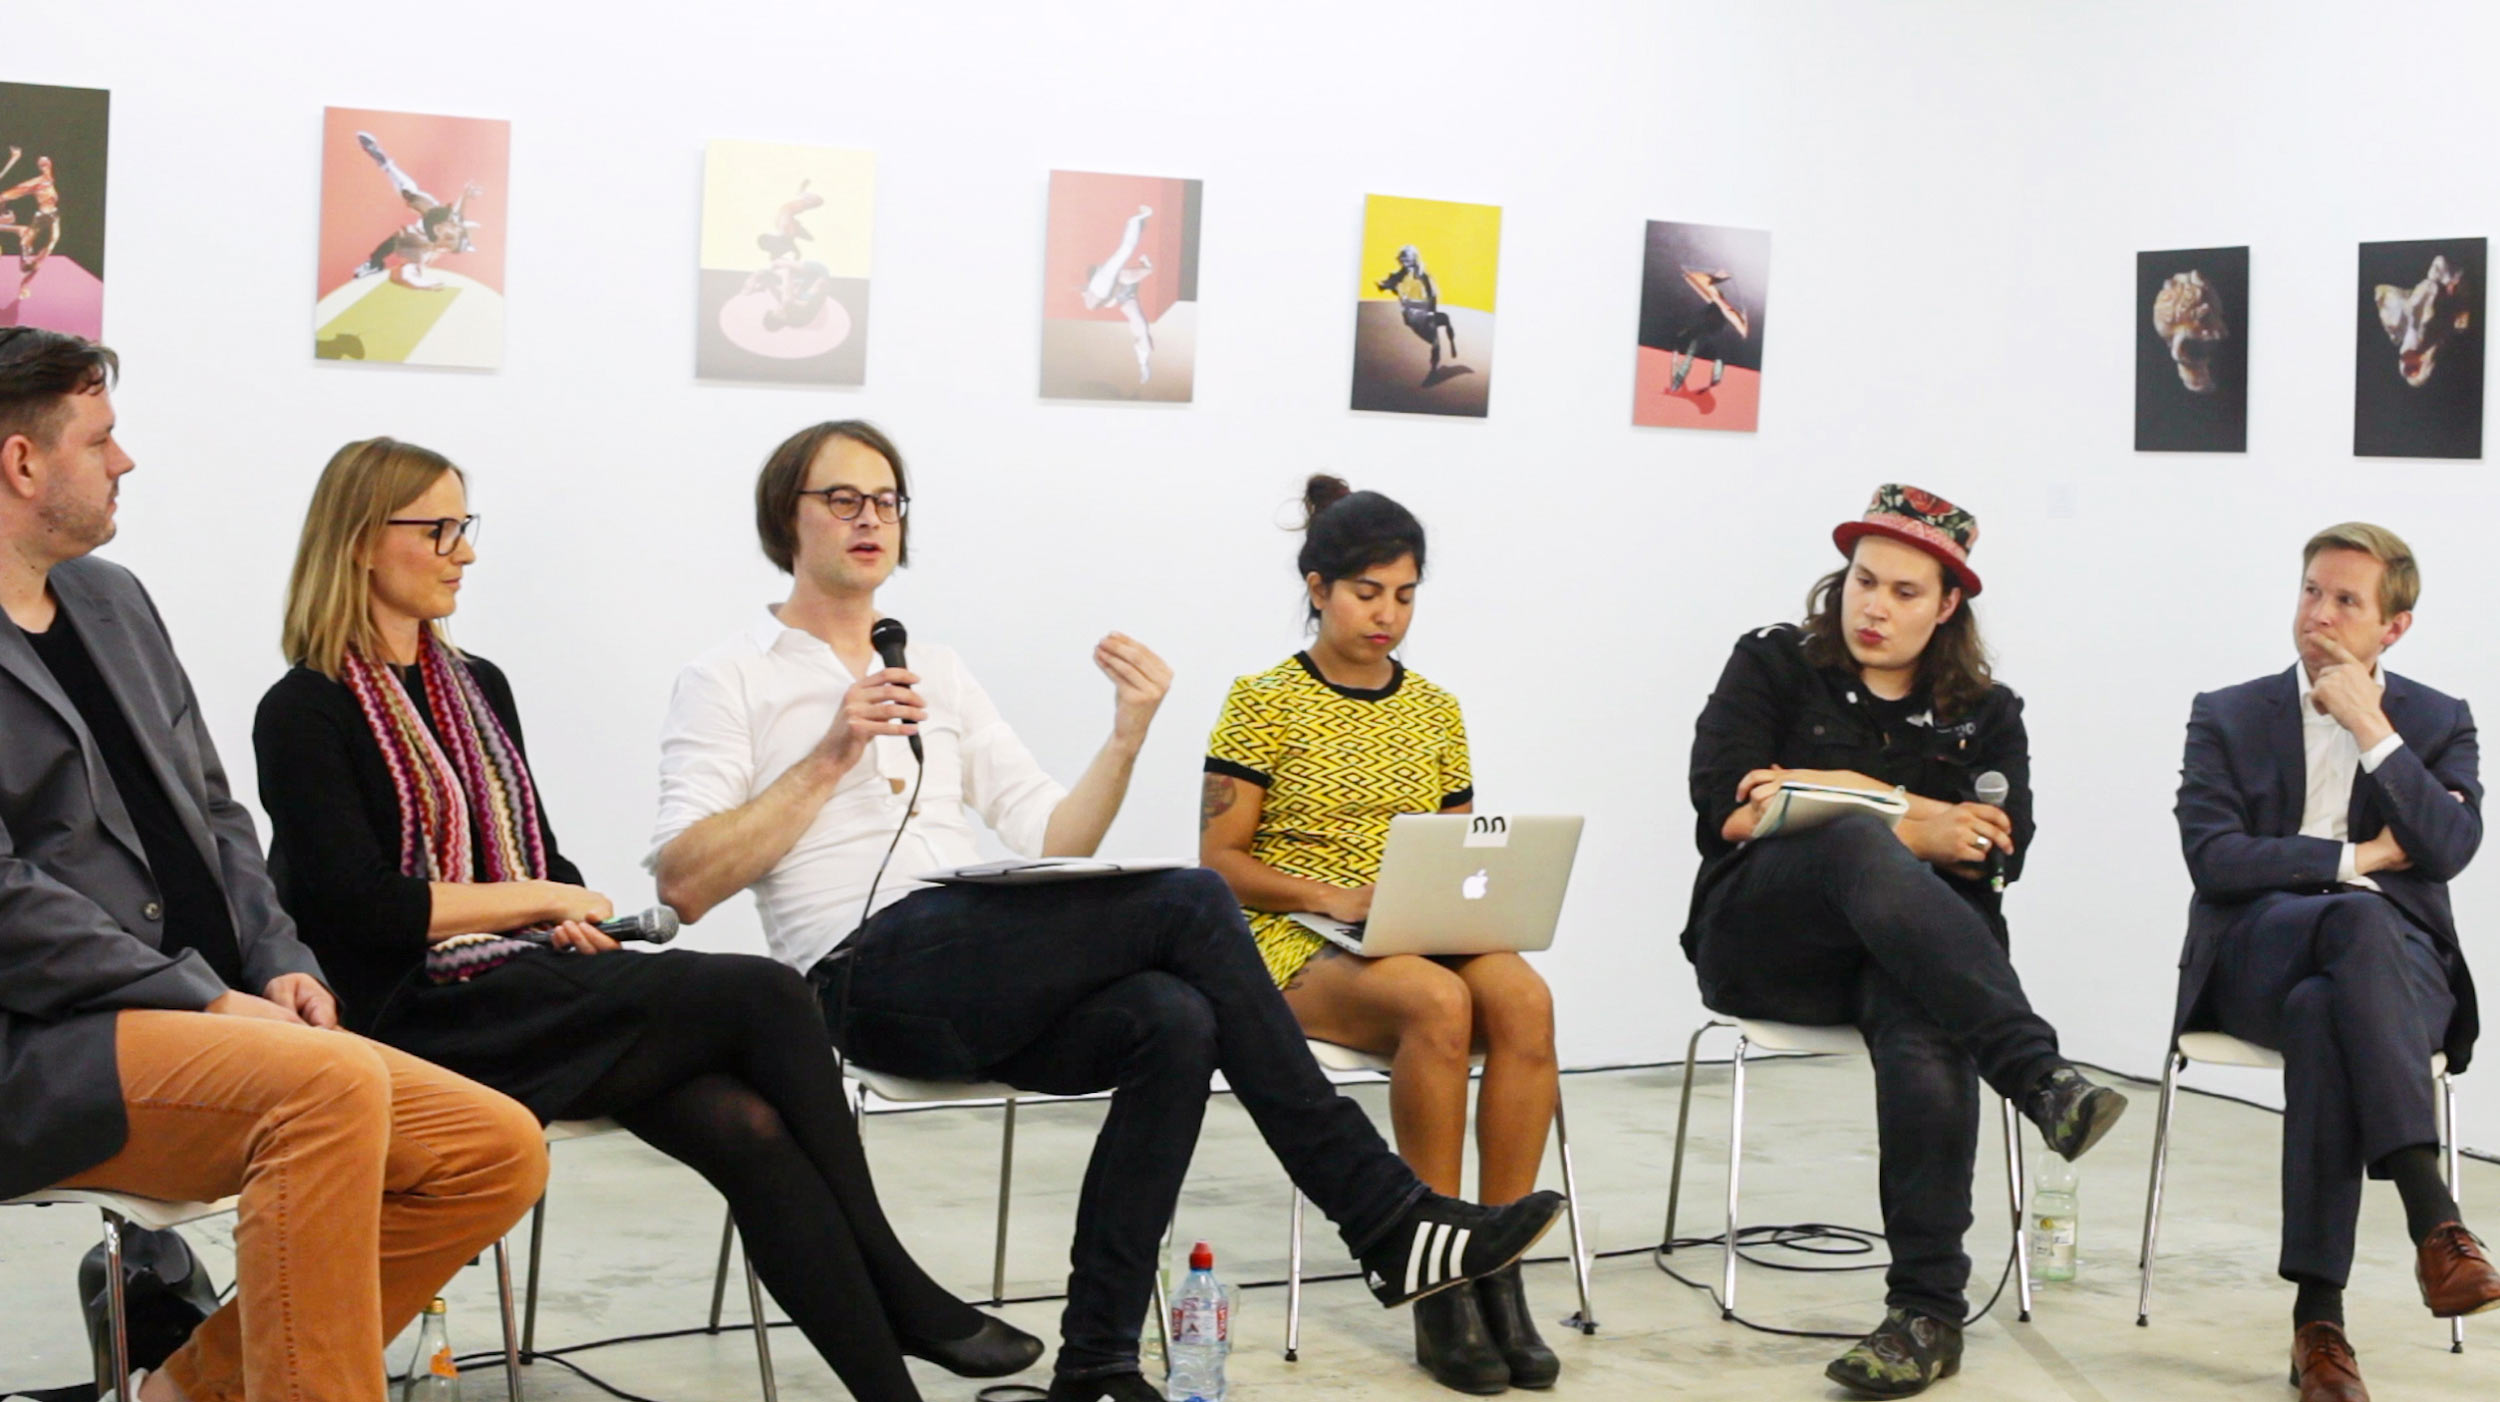 podiumsdiskussion-17-07-2016_kunstausstellungen-analog-digital